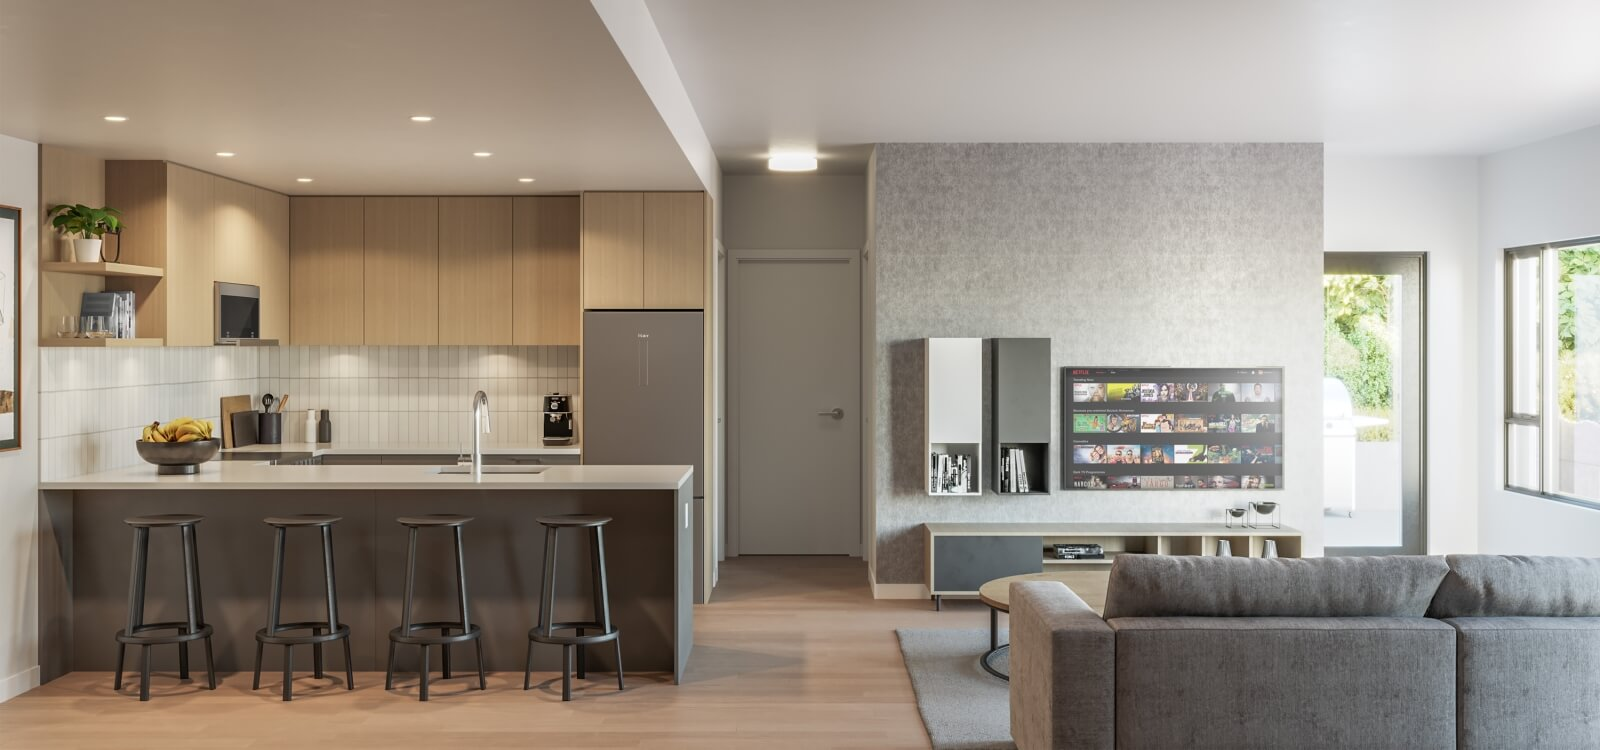 Rendering Of Q5 Living Area